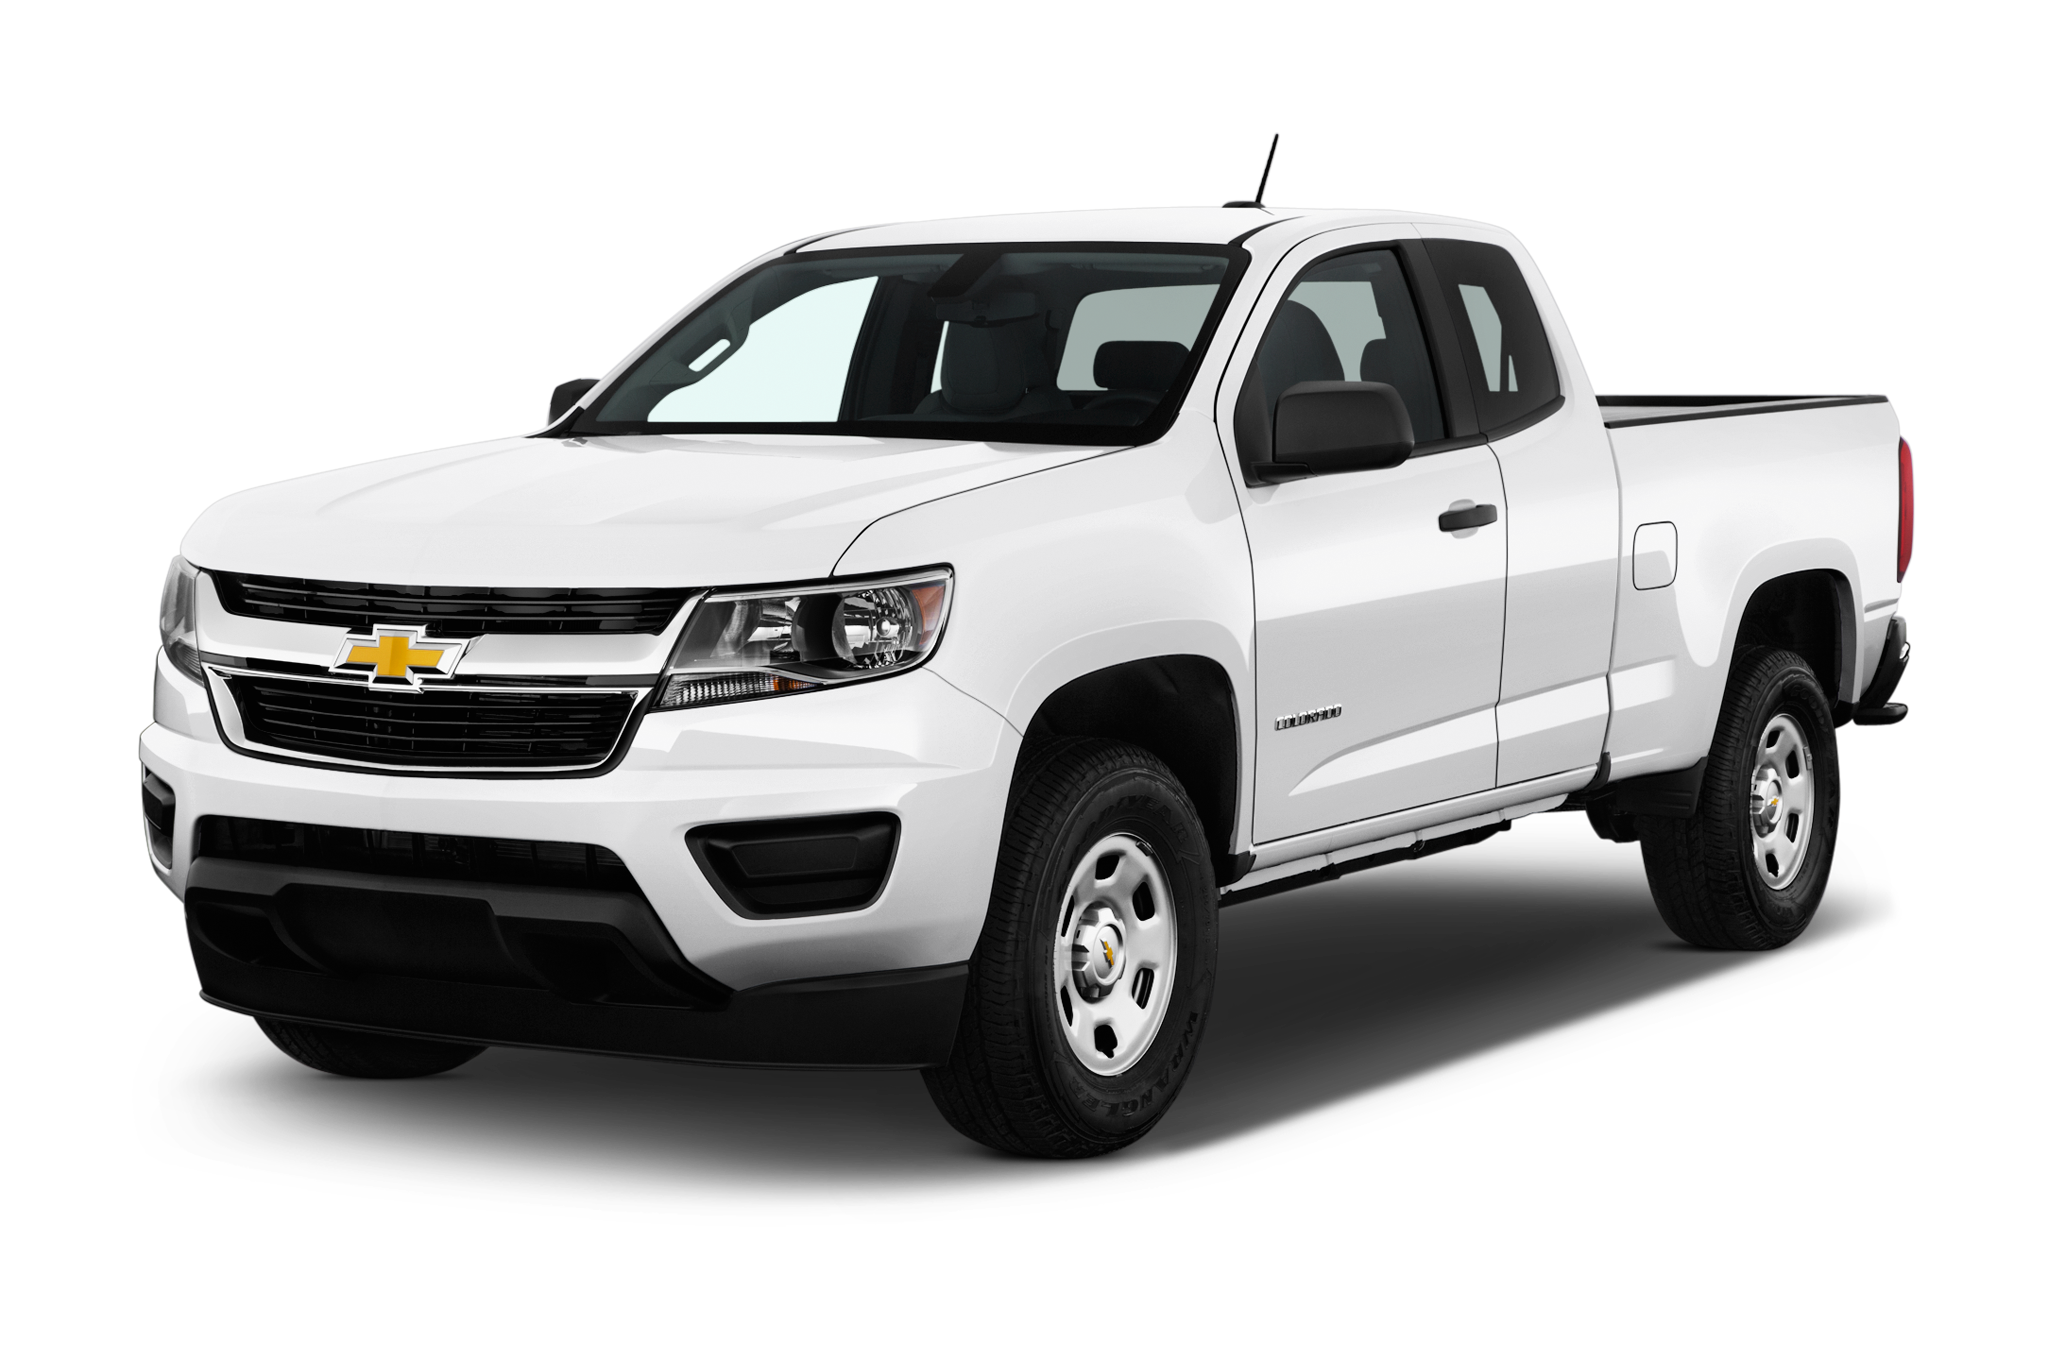 2016 Chevrolet Colorado #4